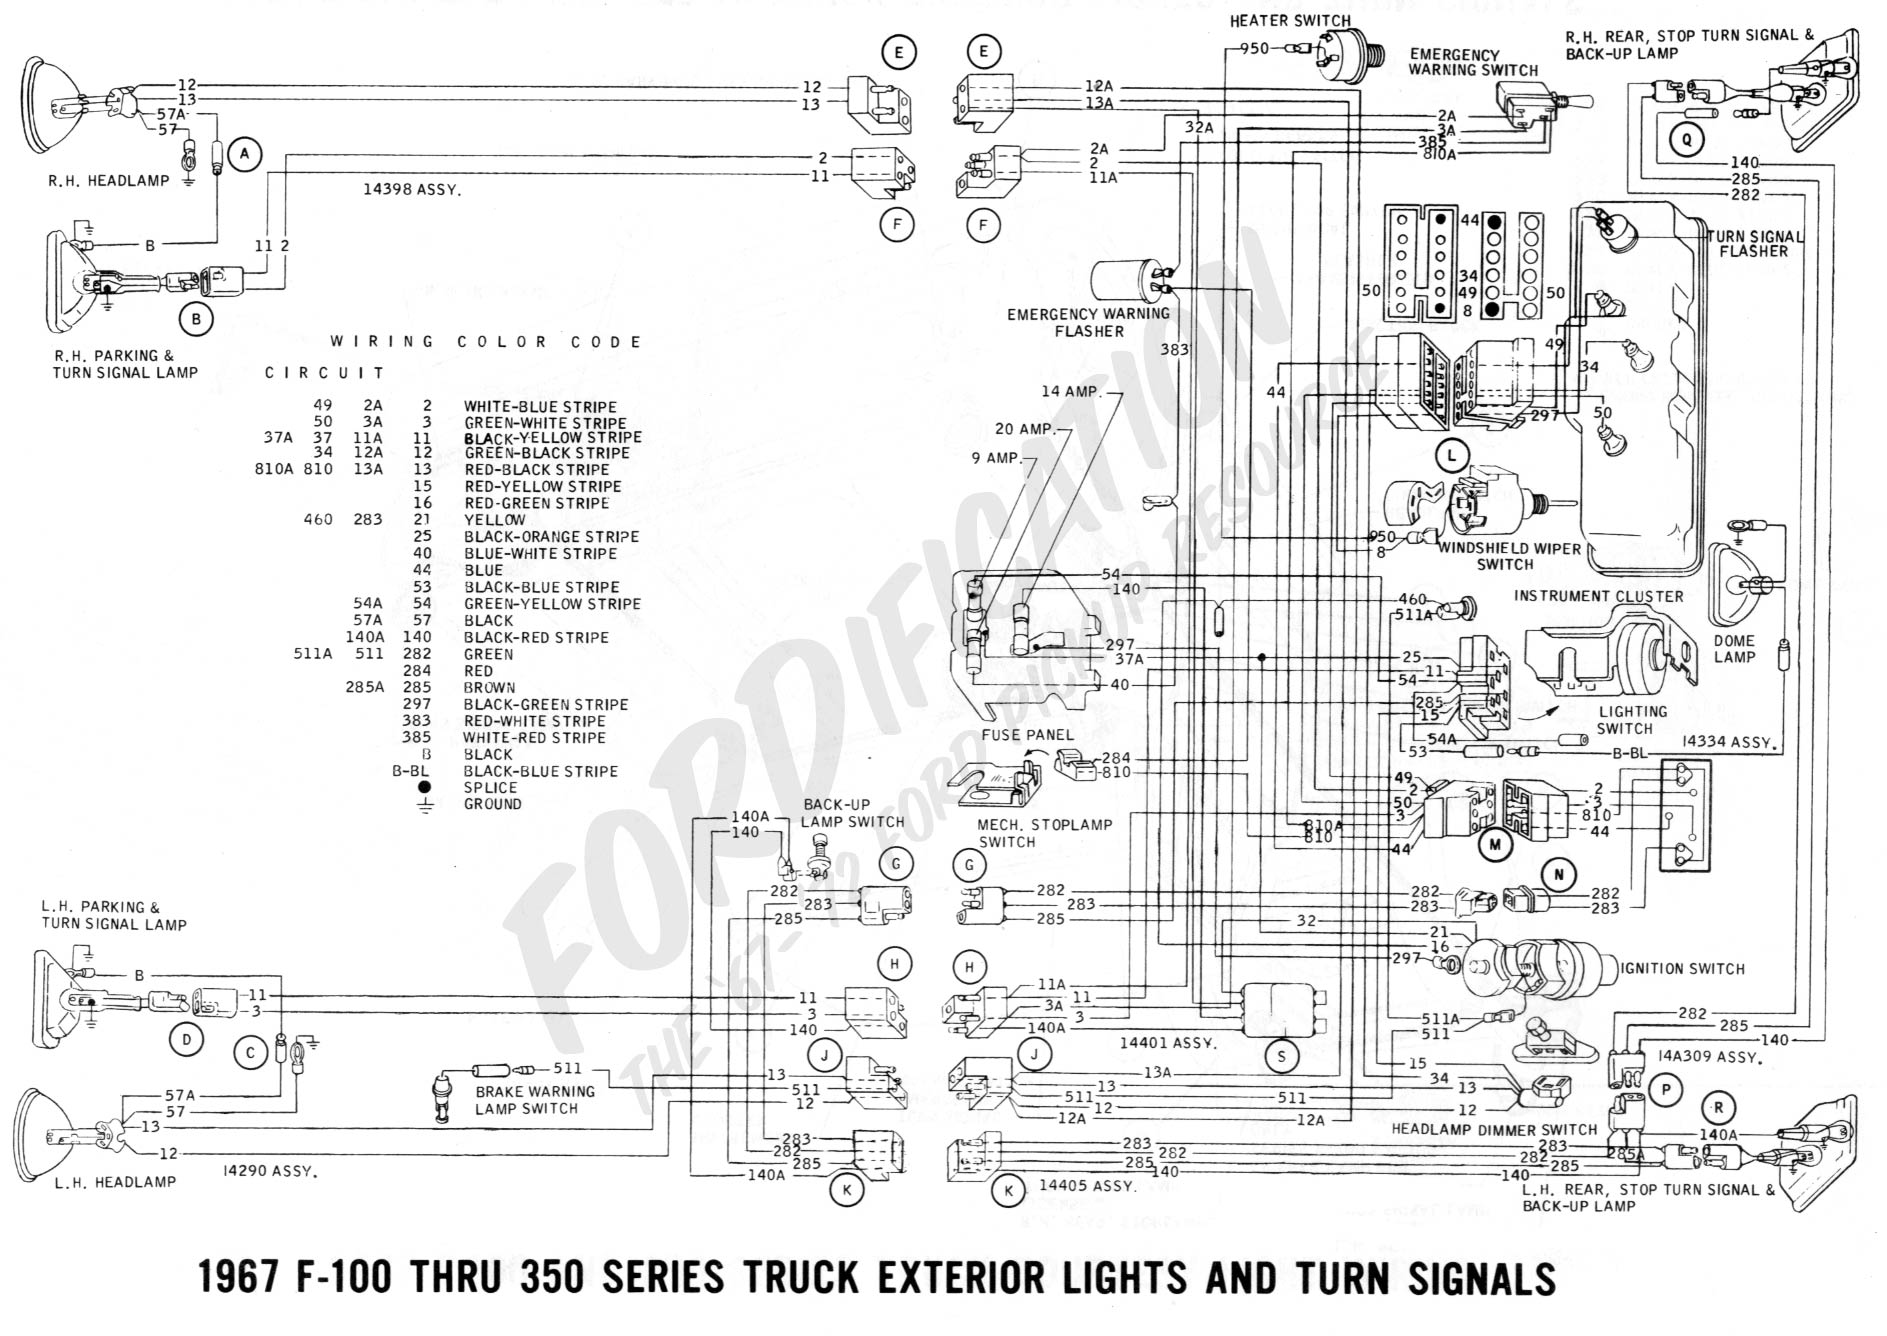 hight resolution of 1972 ford truck wiring diagrams free wiring diagrams 56 ford f100 wiring diagram 1969 ford f100 wiring diagram